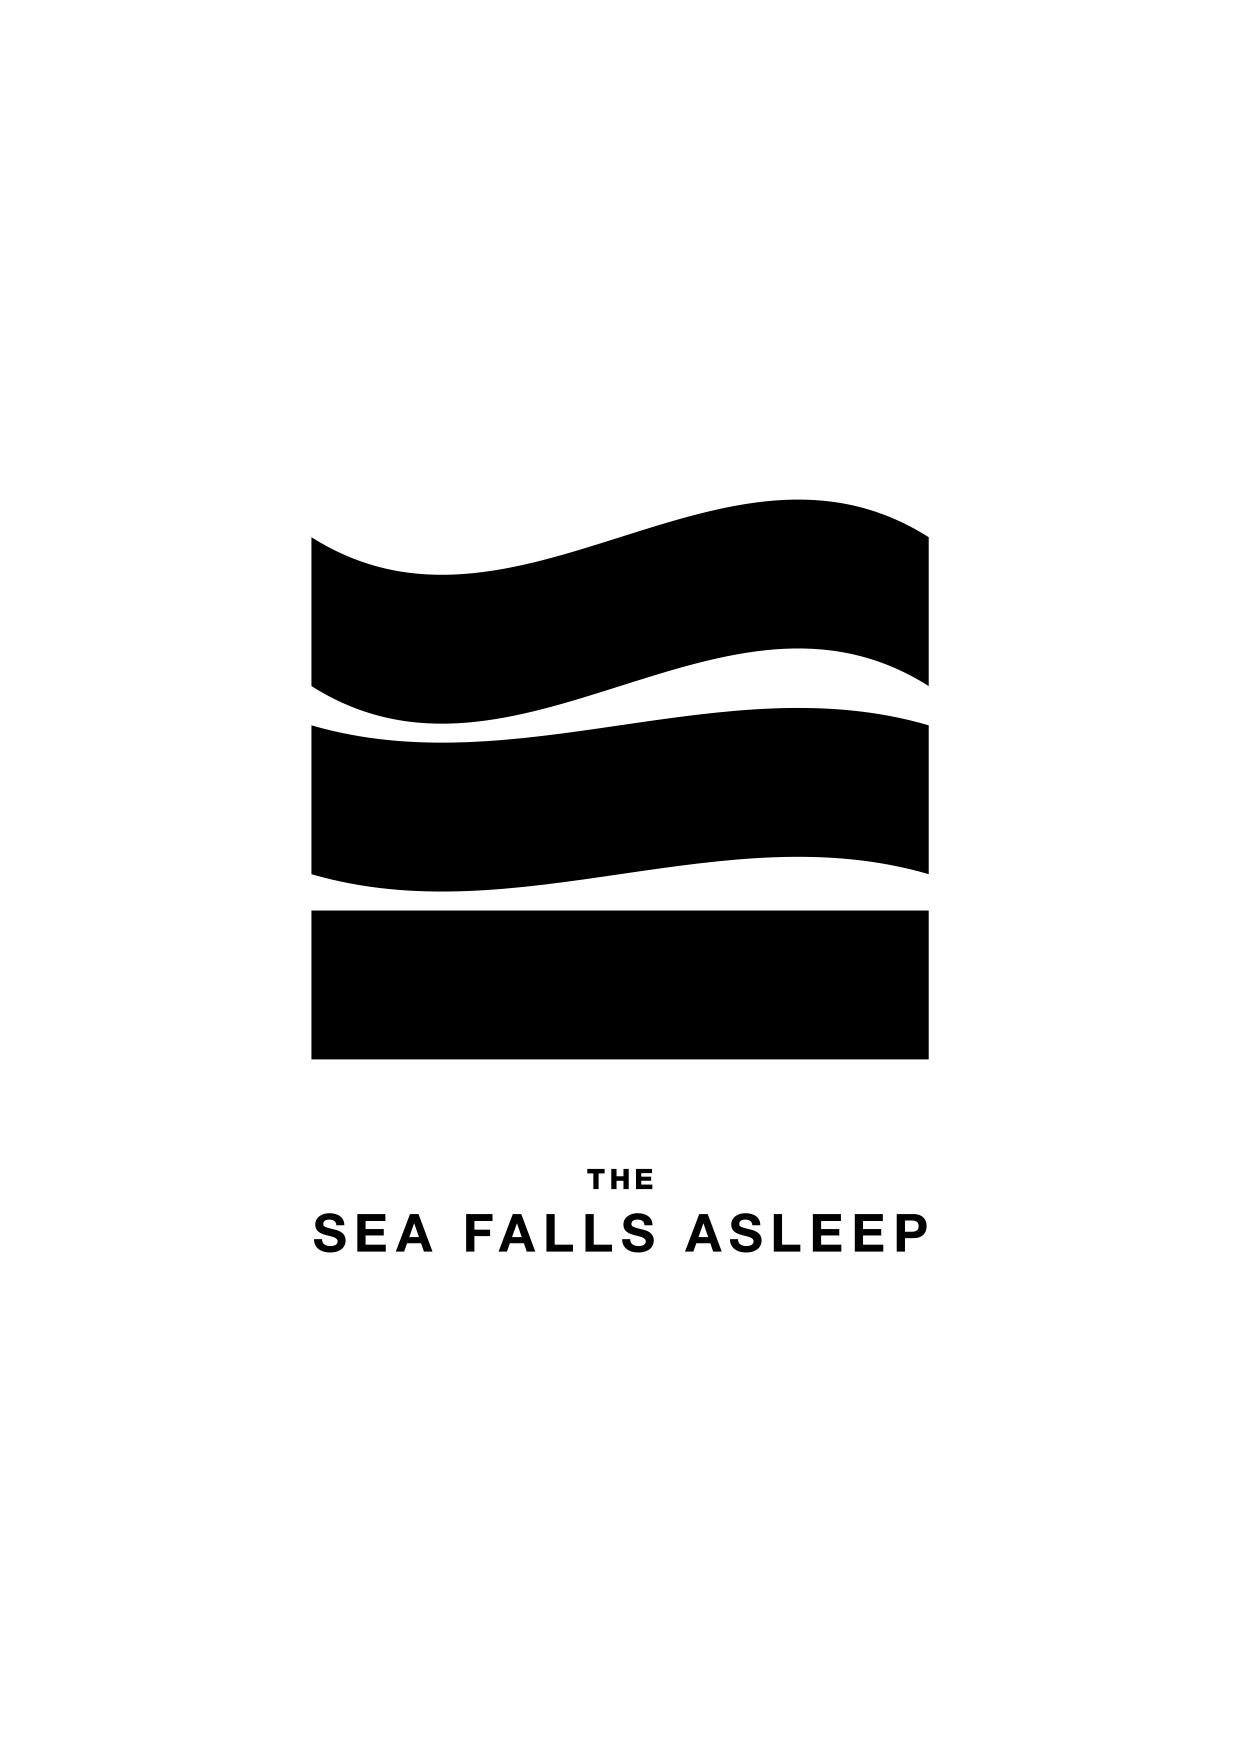 the sea falls asleep